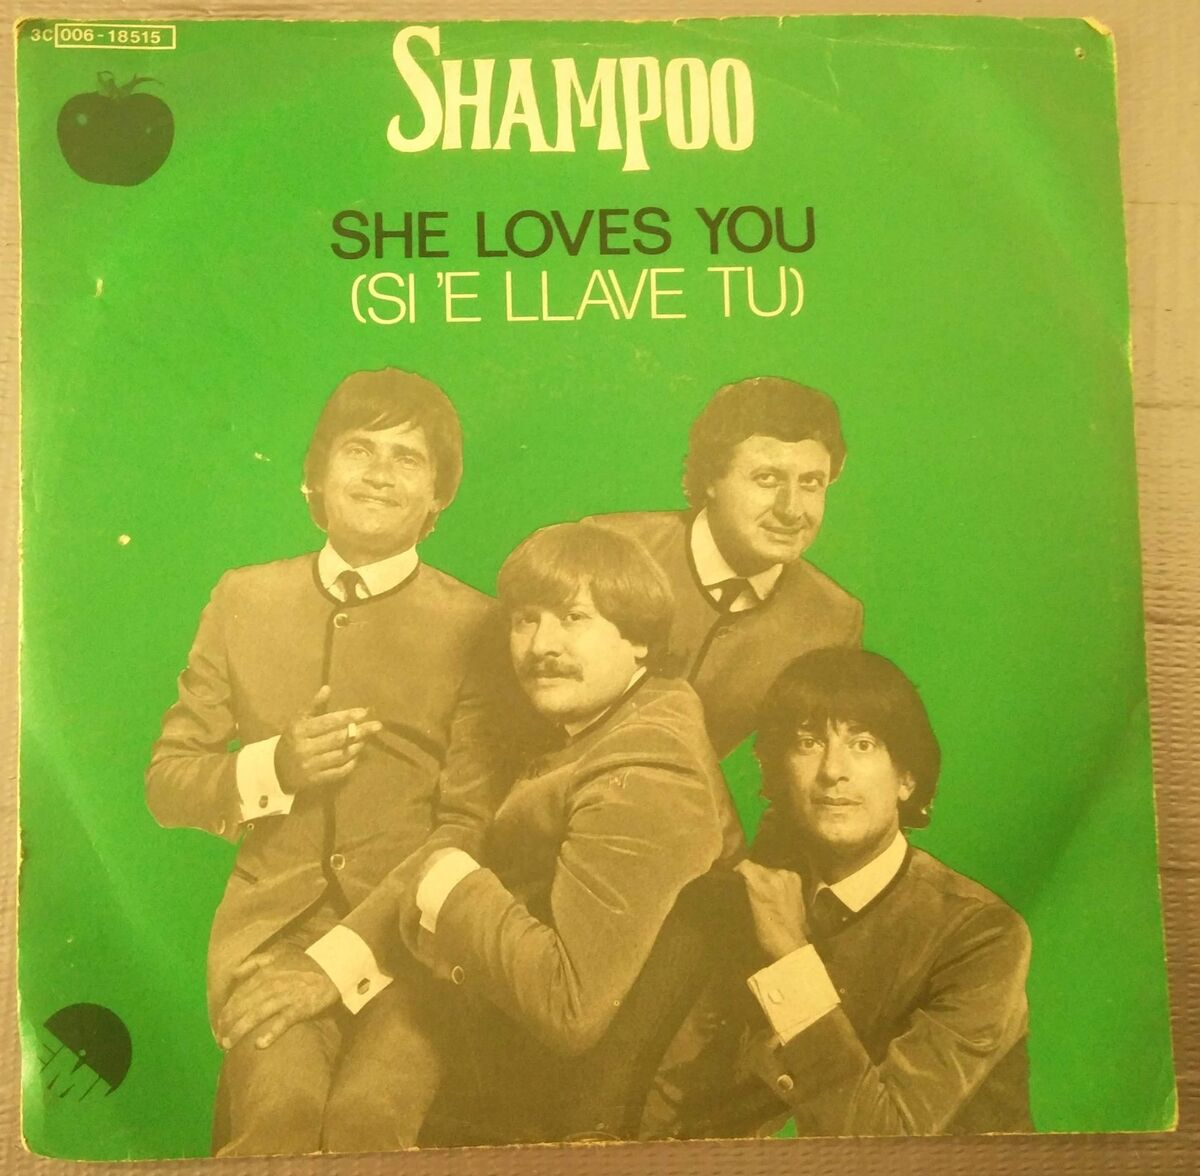 Shampoo she loves you si e llave tu help peppe 45 giri beatles vg ex 